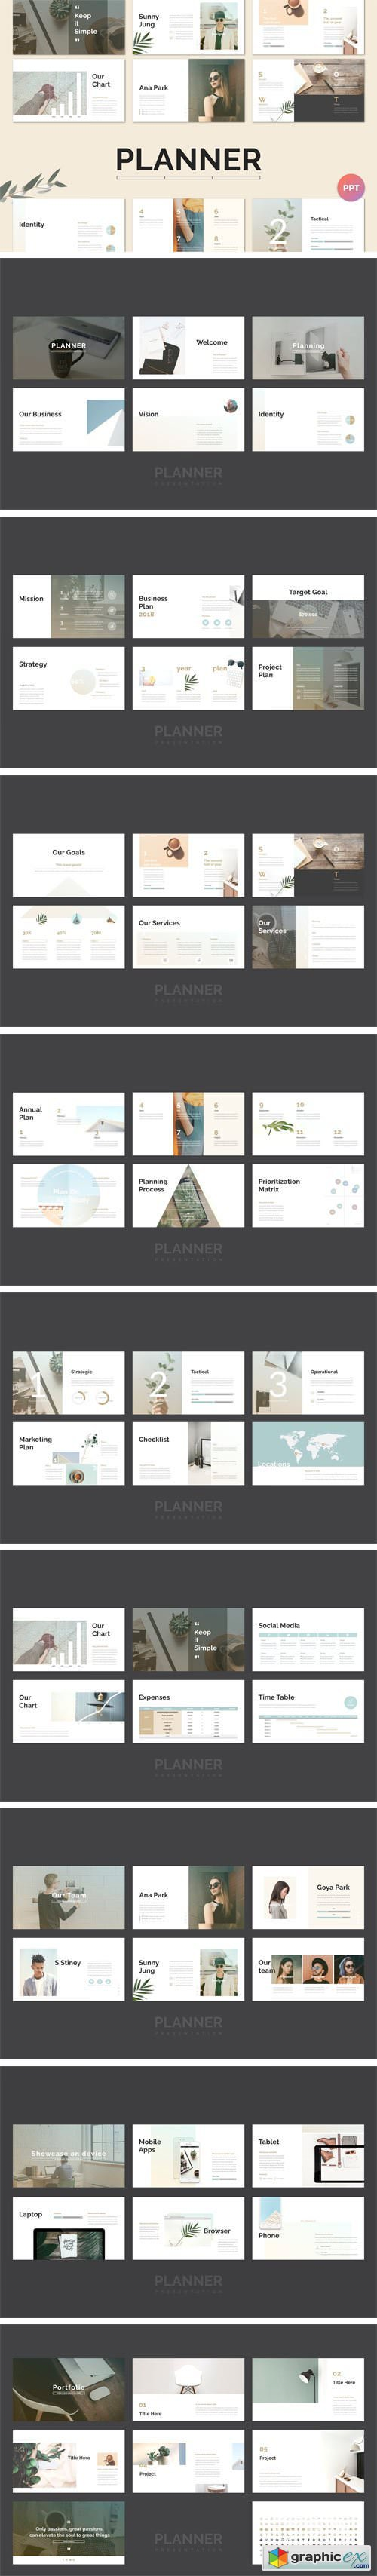 Planner PowerPoint Template 2181967